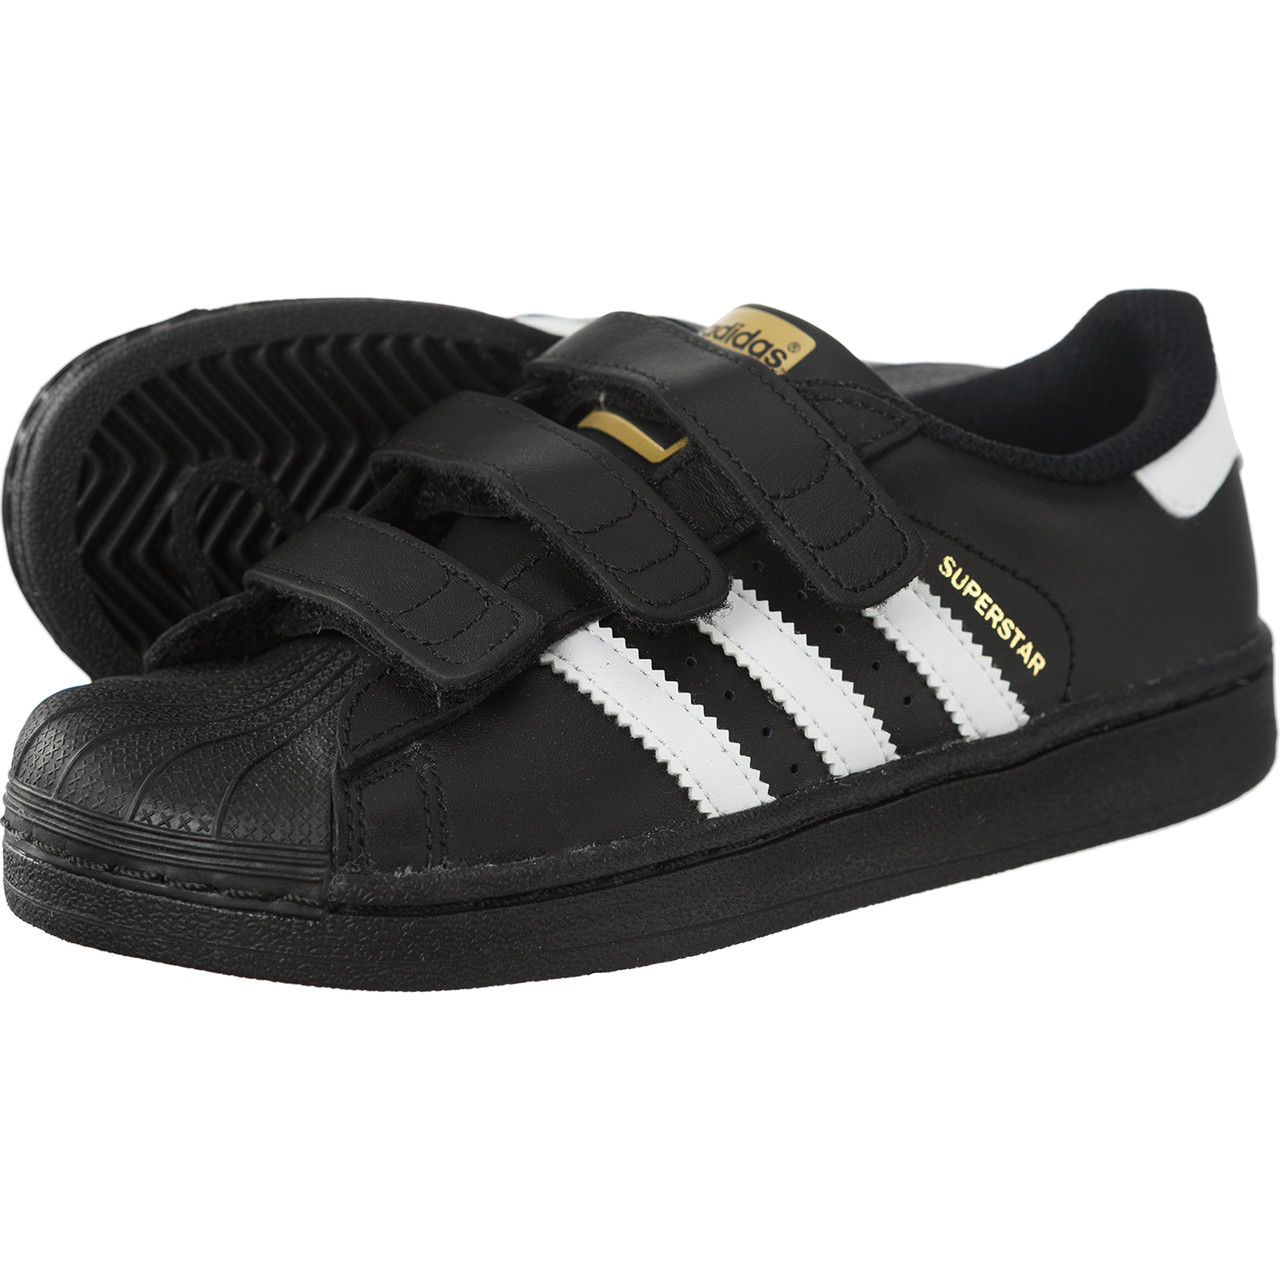 d8adad1f281e 0131d56633b0 Buty adidas Superstar Foundation Cf C 071 - eastend.pl!